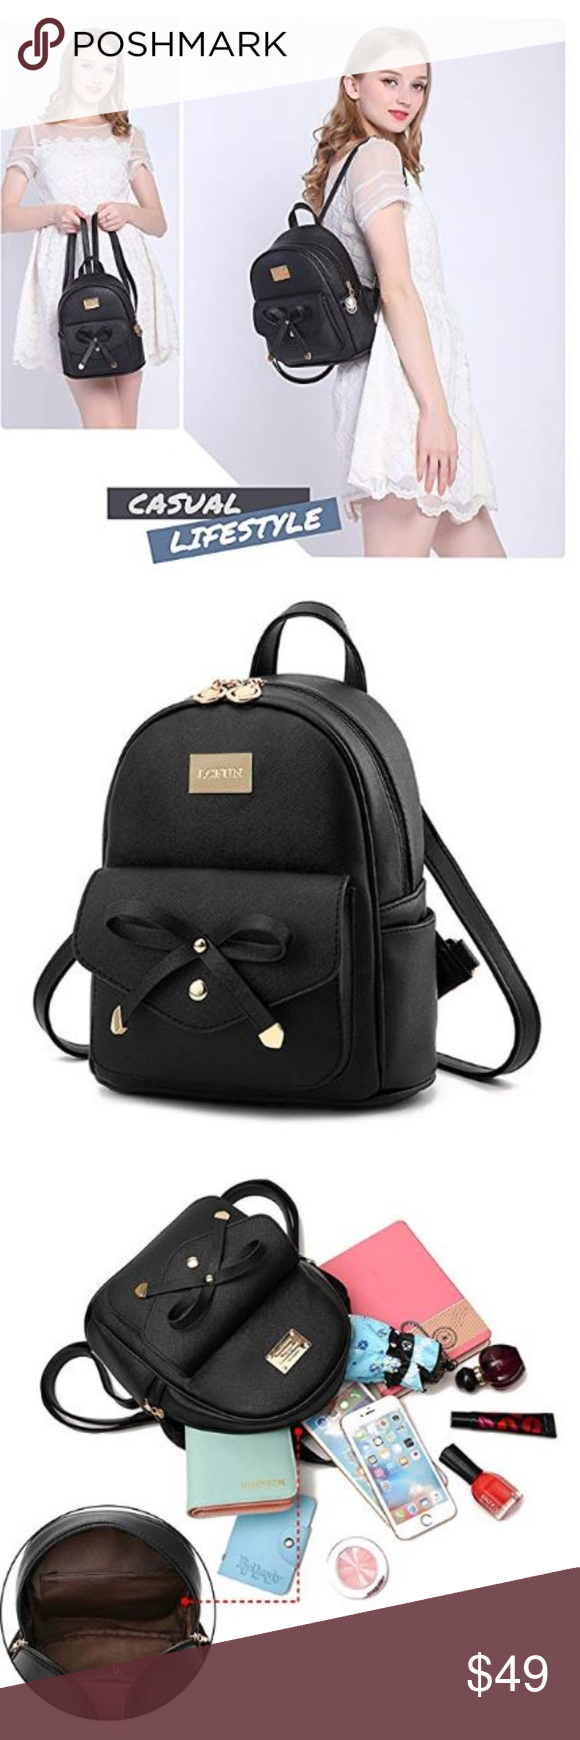 3de23841a Cute Mini Leather Backpack Fashion for Girls and W GOOD QUALITY】 Cute  backpack use Durable Thick FAUX LEATHER with polyester lining. houlder  straps for ...